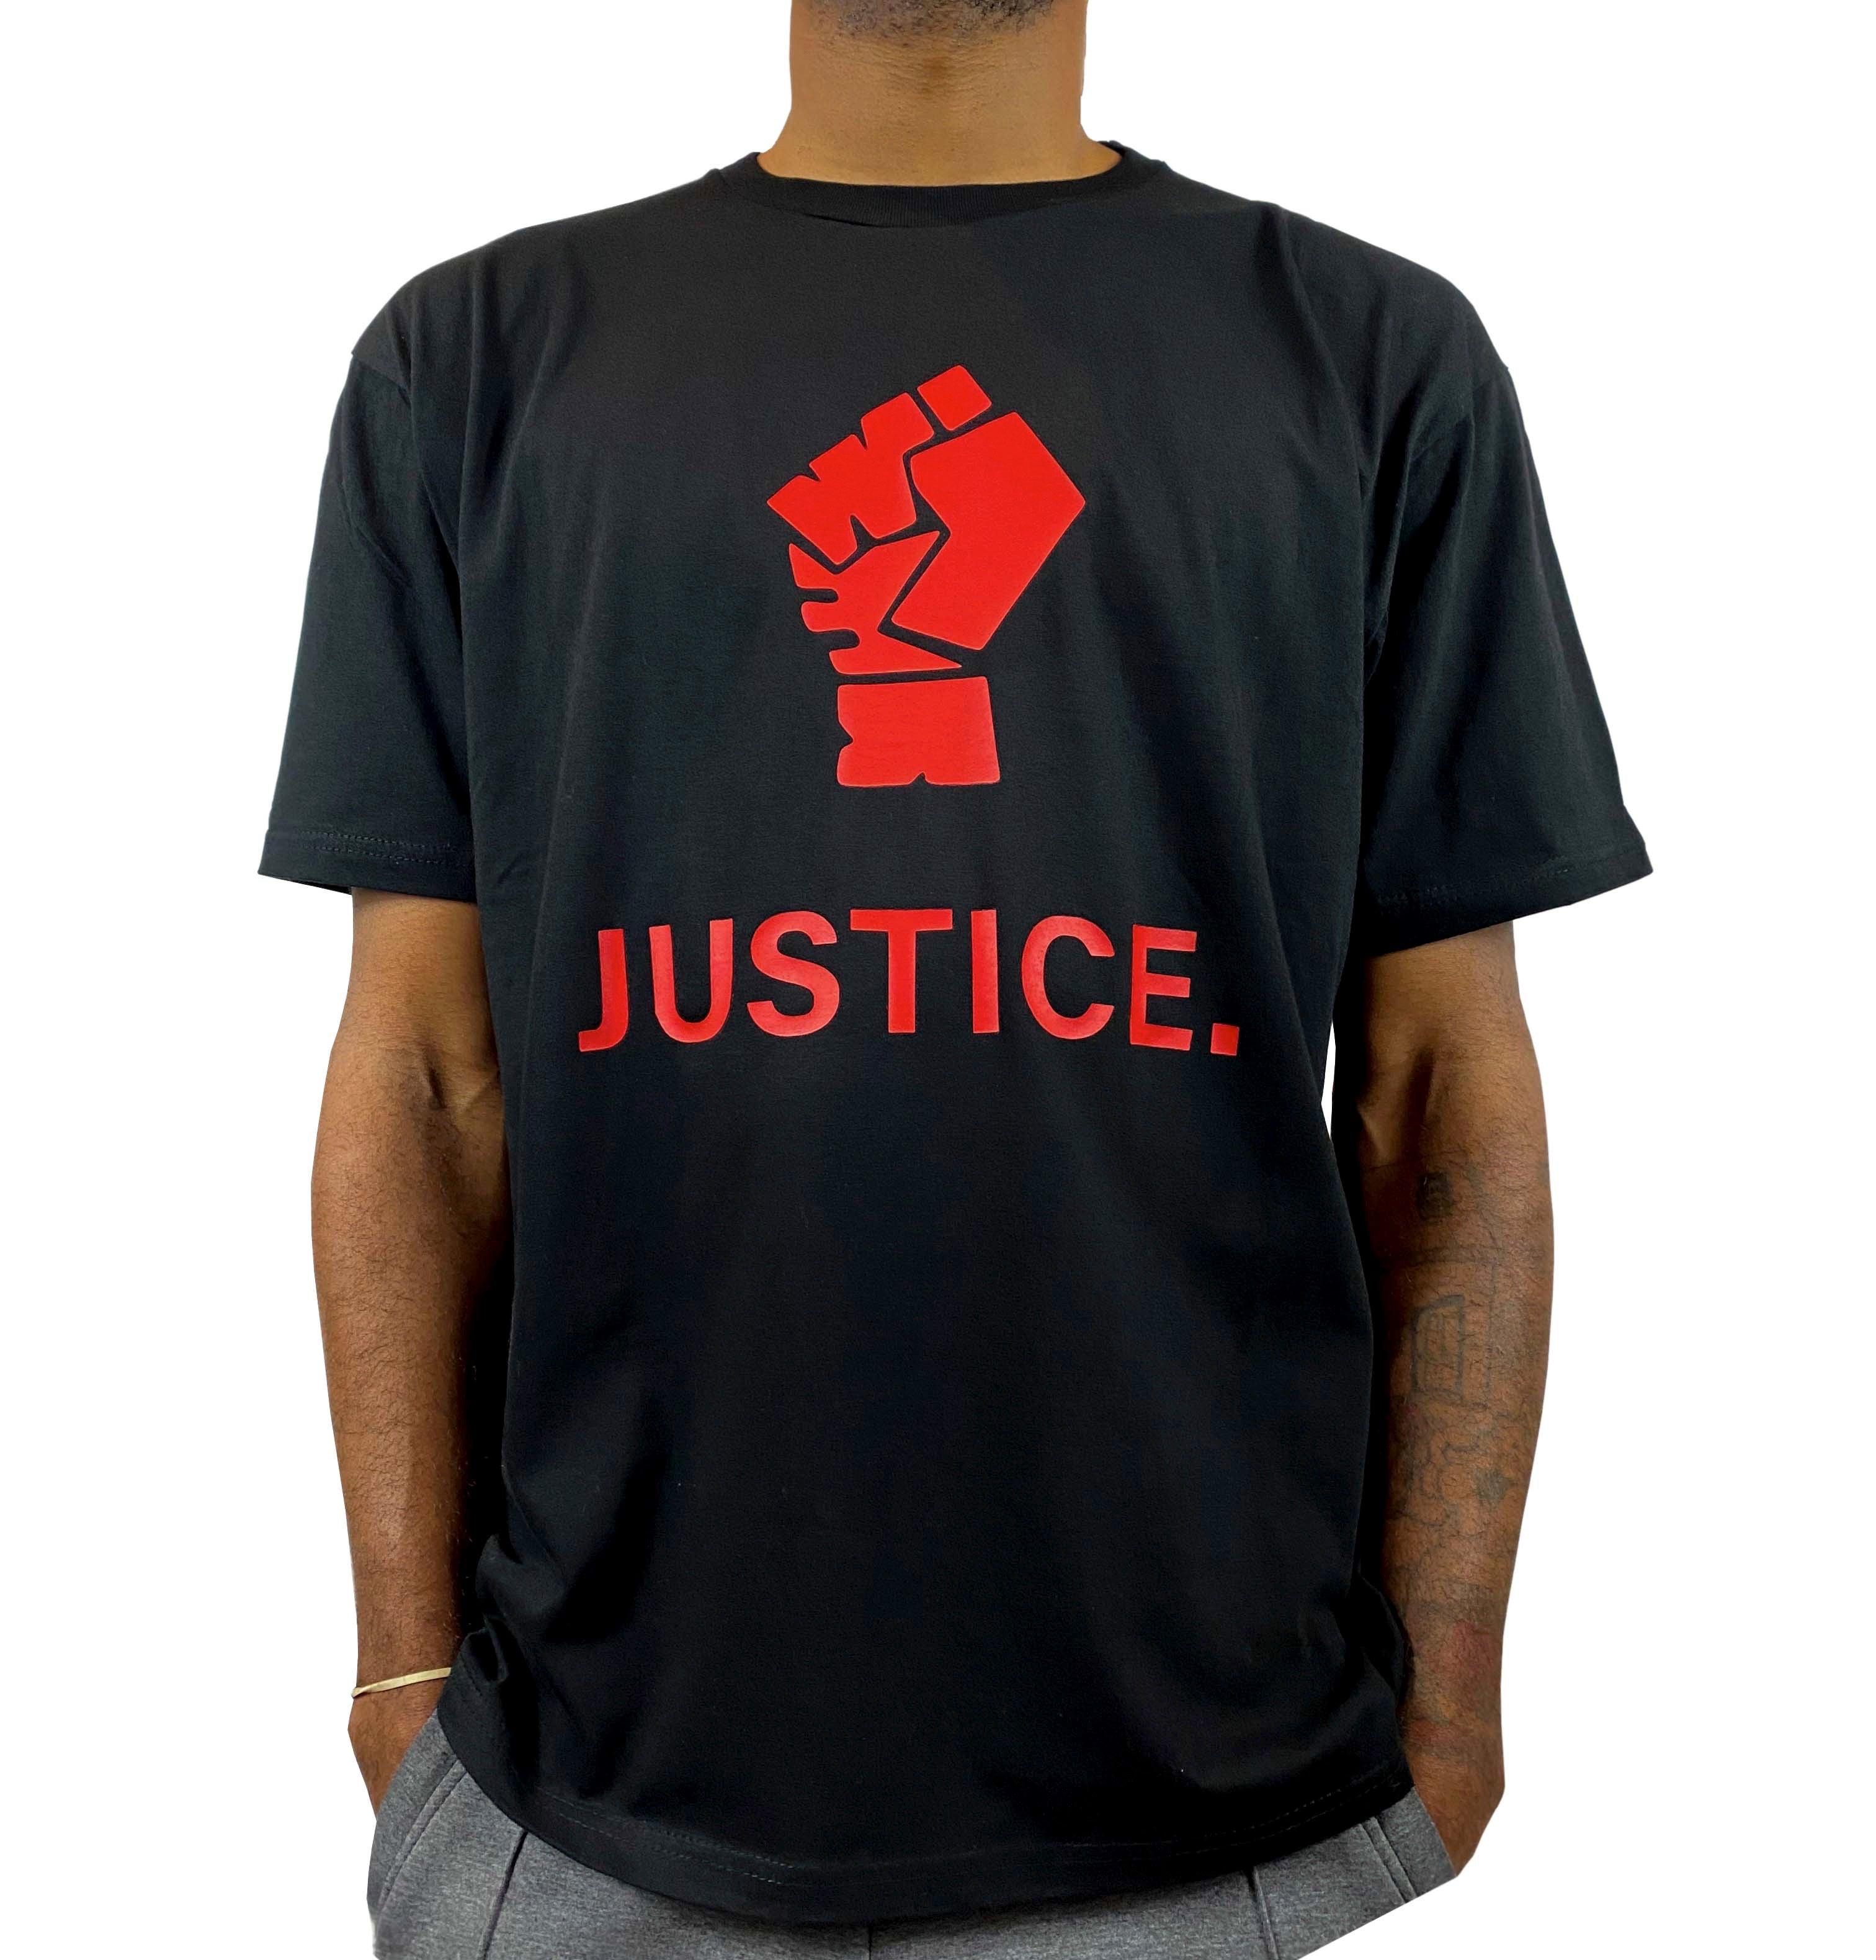 JUSTICE. T-SHIRT